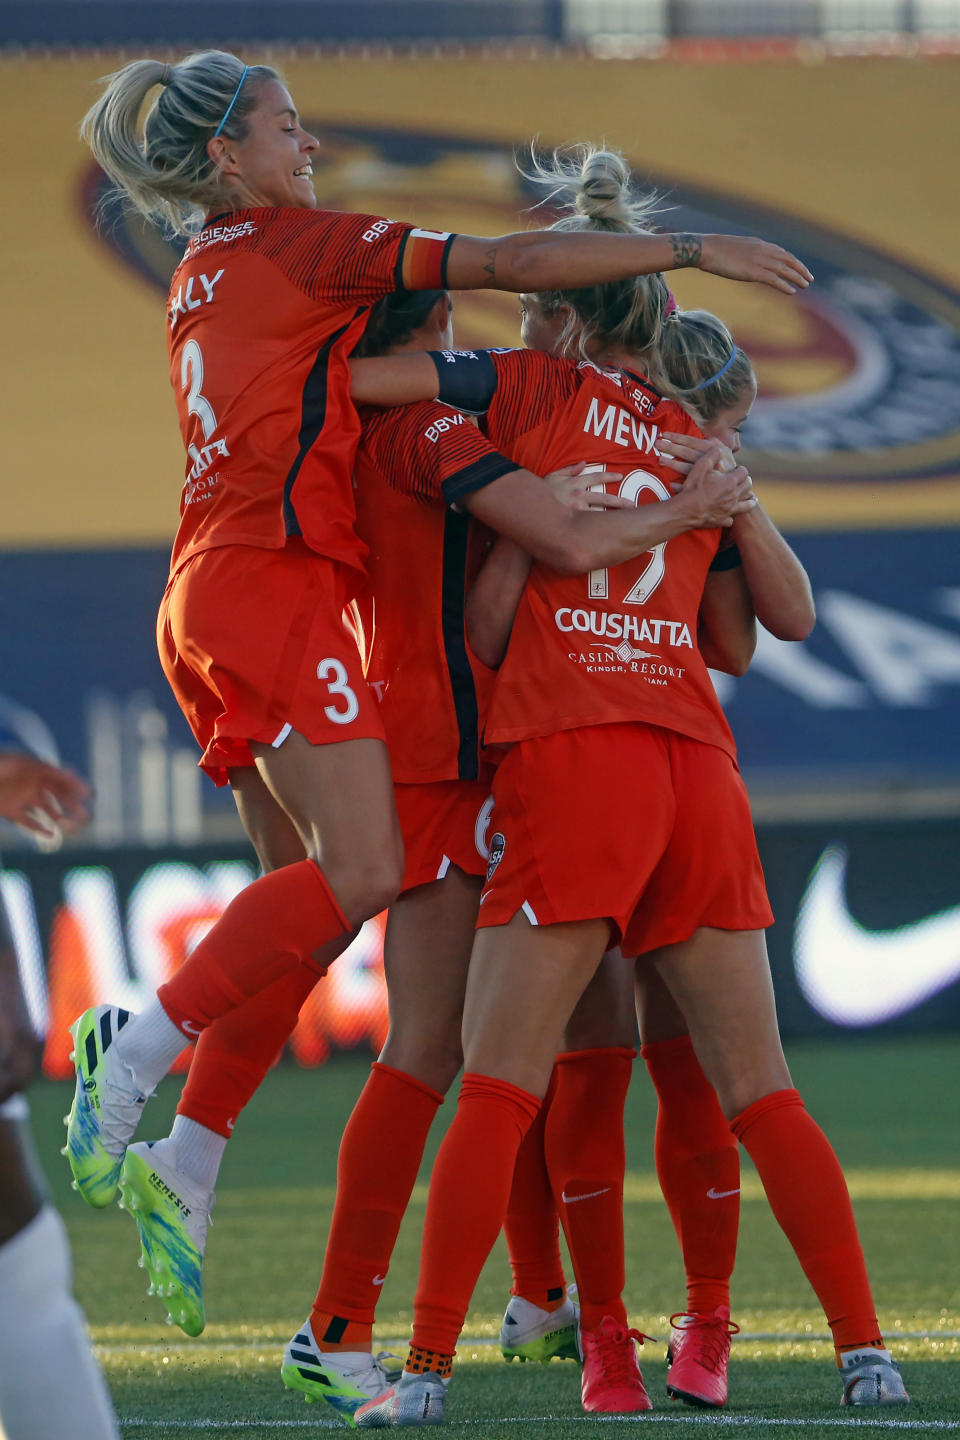 Houston Dash forward Rachel Daly (3) joins teammates celebrating with midfielder Kristie Mewis (19) after Mewis' goal against OL Reign during the first half of an NWSL Challenge Cup soccer match at Zions Bank Stadium, Saturday, July 4, 2020, Herriman, Utah. (AP Photo/Rick Bowmer)